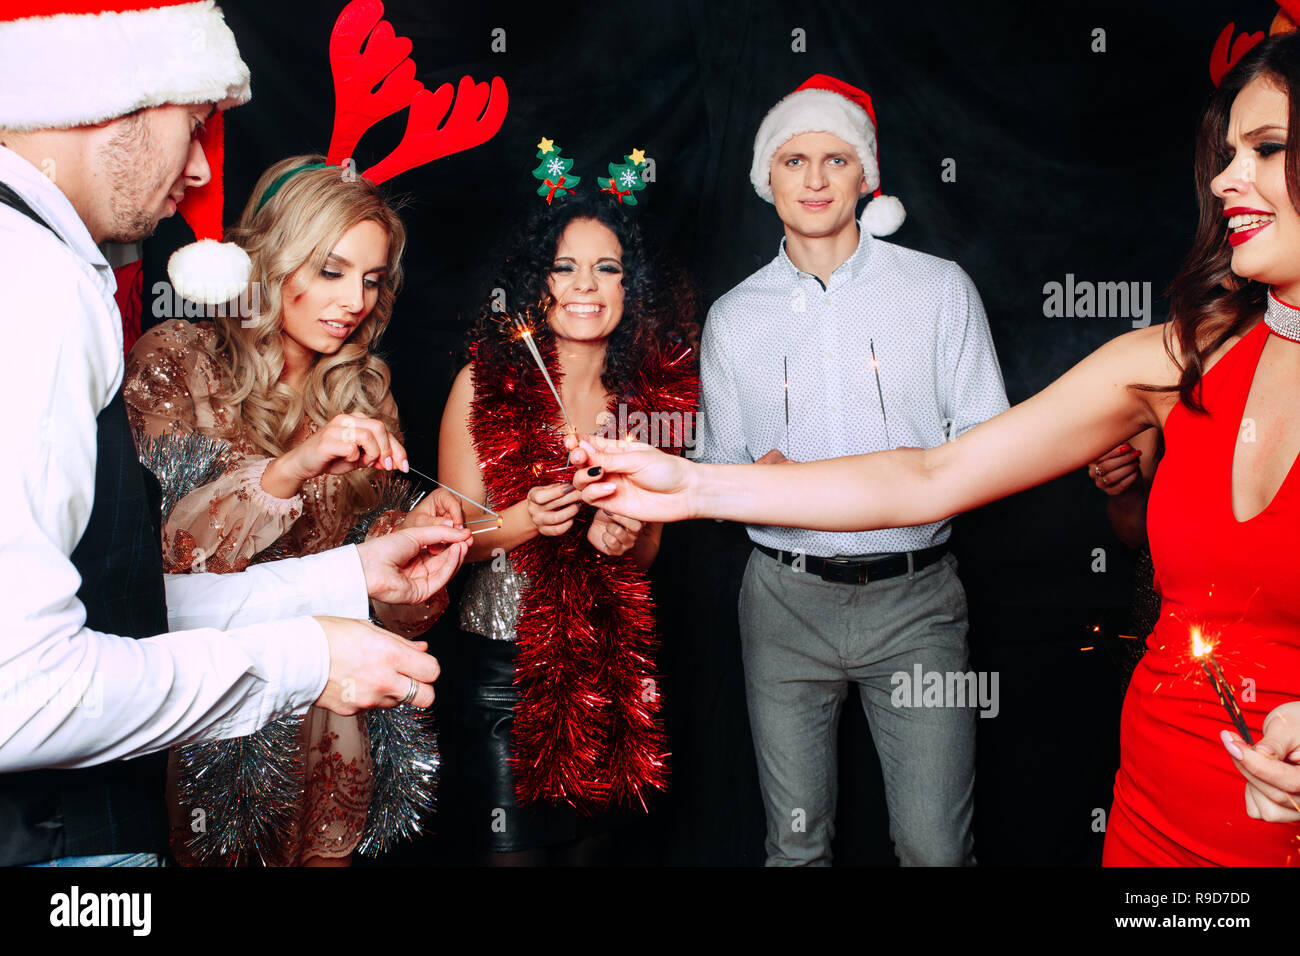 With Love Christmas.Party With Friends They Love Christmas Group Of Cheerful